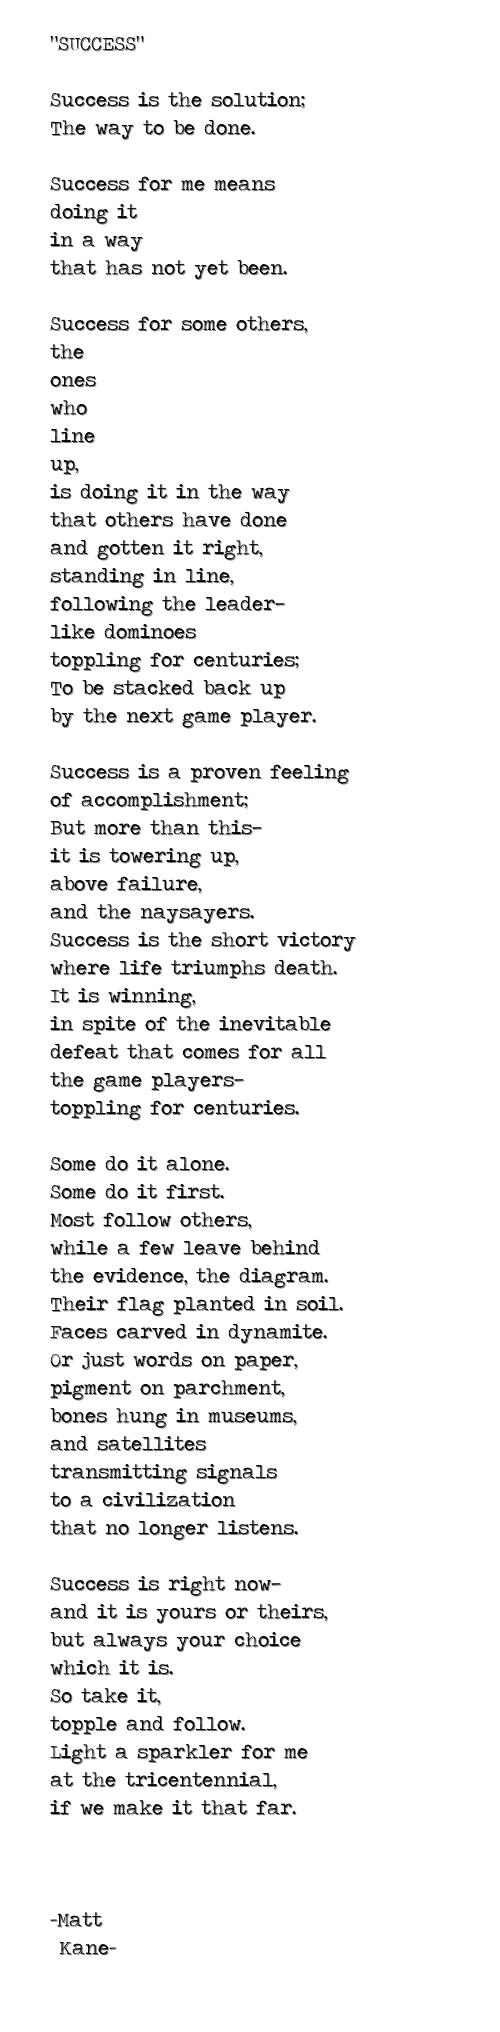 SUCCESS - a poem by Matt Kane